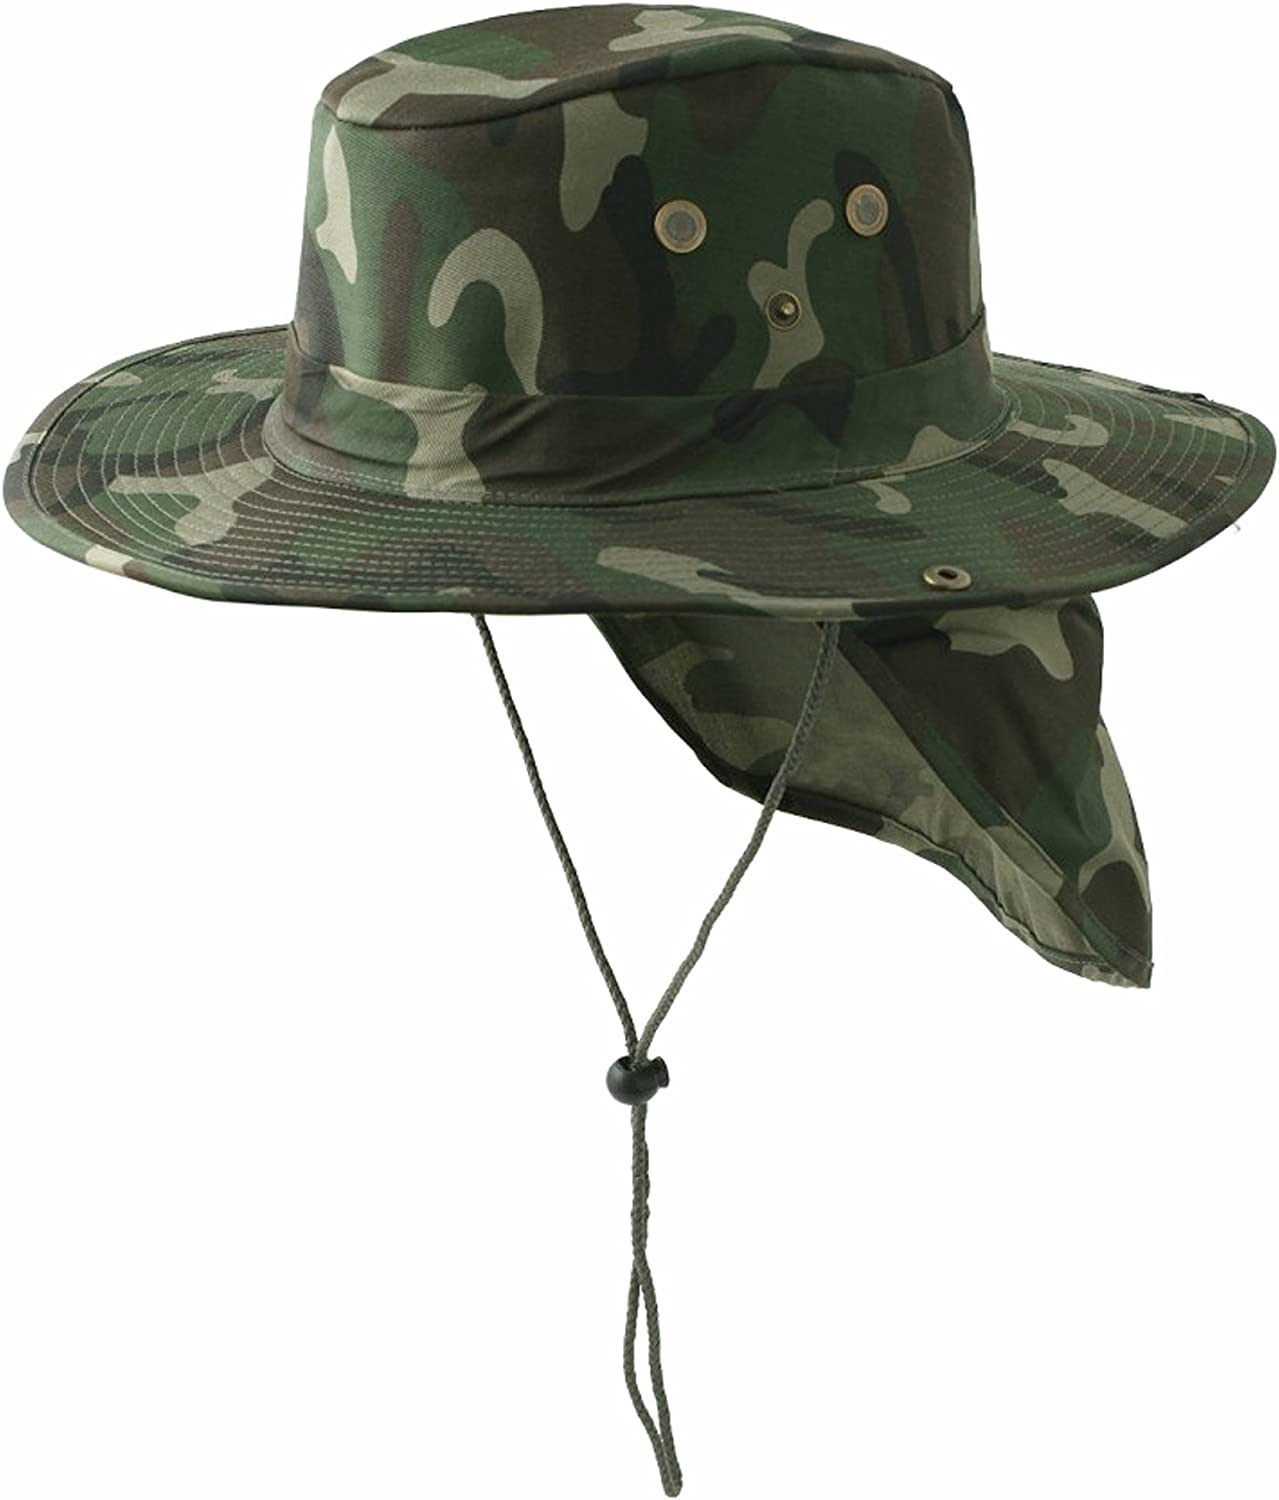 Buy Caps and Hats Safari Fishing Hat with Neckflap Boonie Mens Green Camouflage